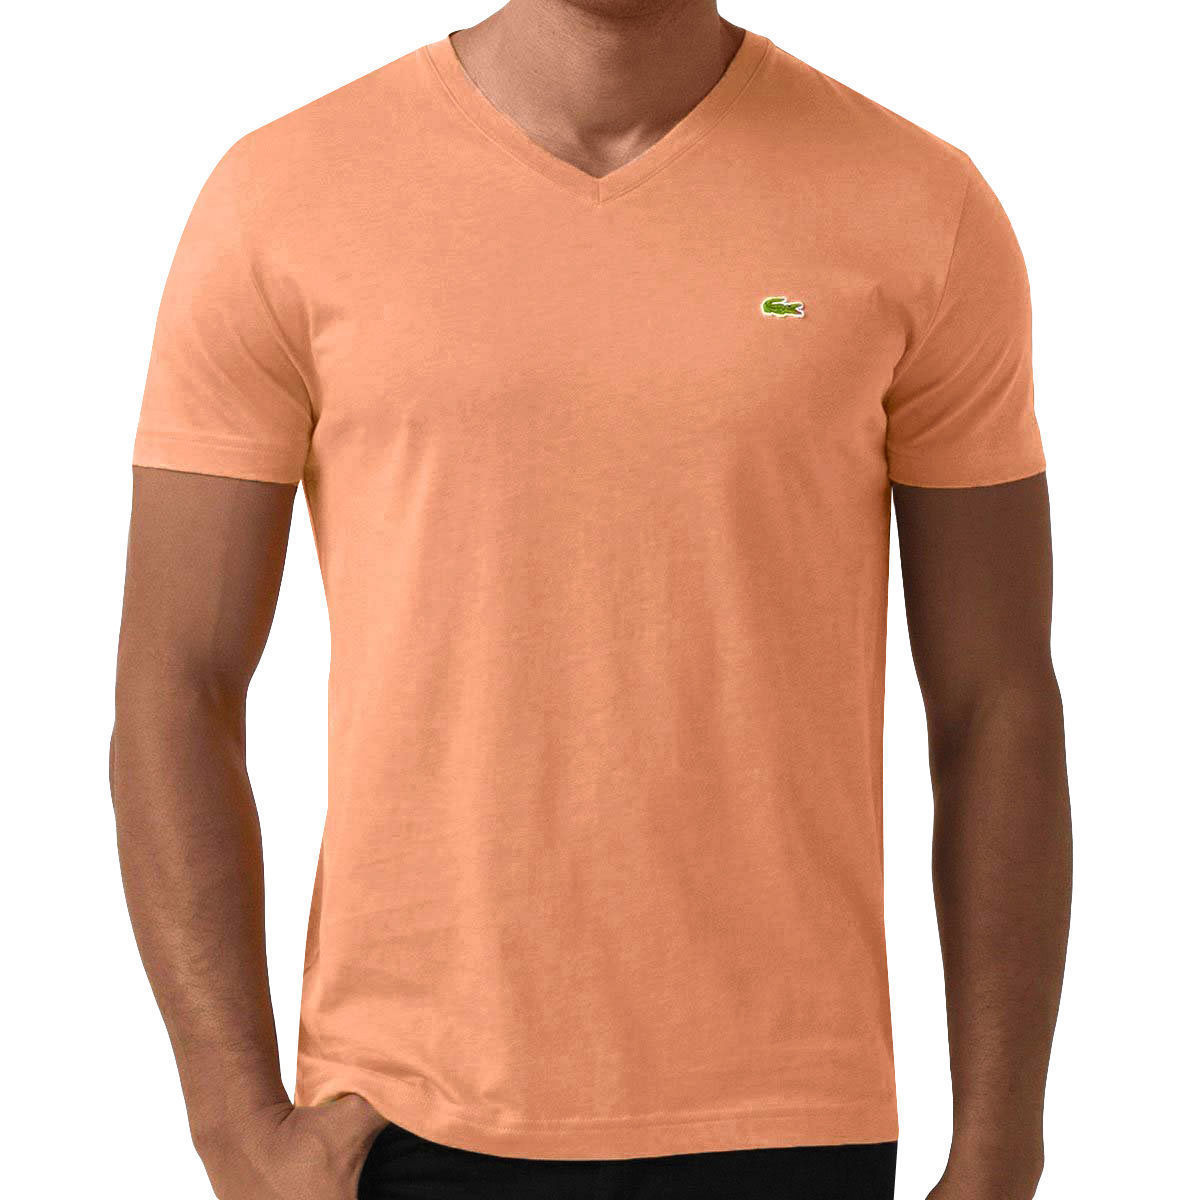 Lacoste Men's Sport Premium Pima Cotton V-Neck Shirt T-Shirt Pumpkin Orange